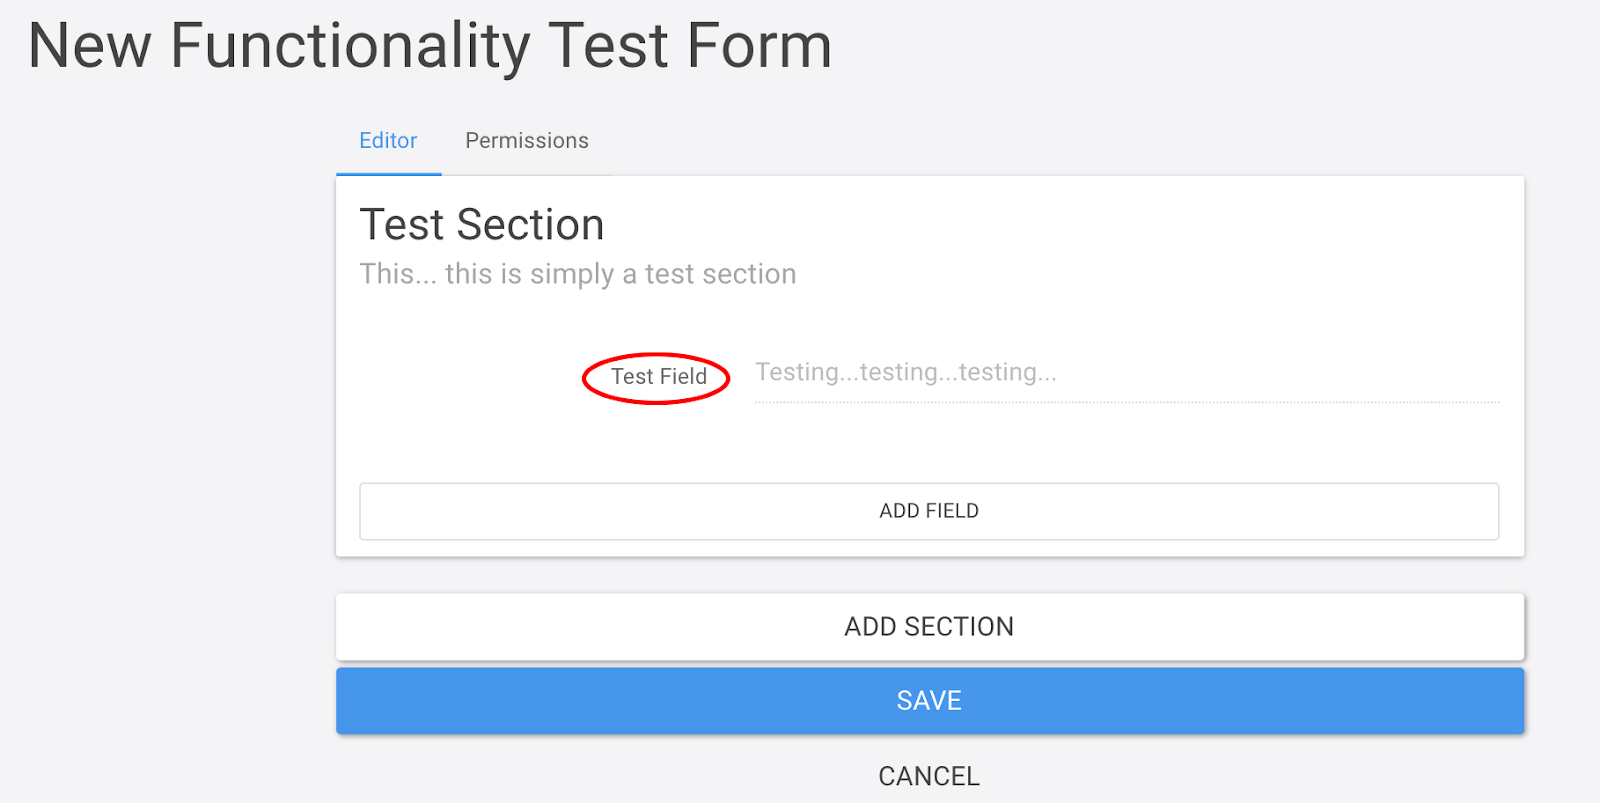 A functionality test form